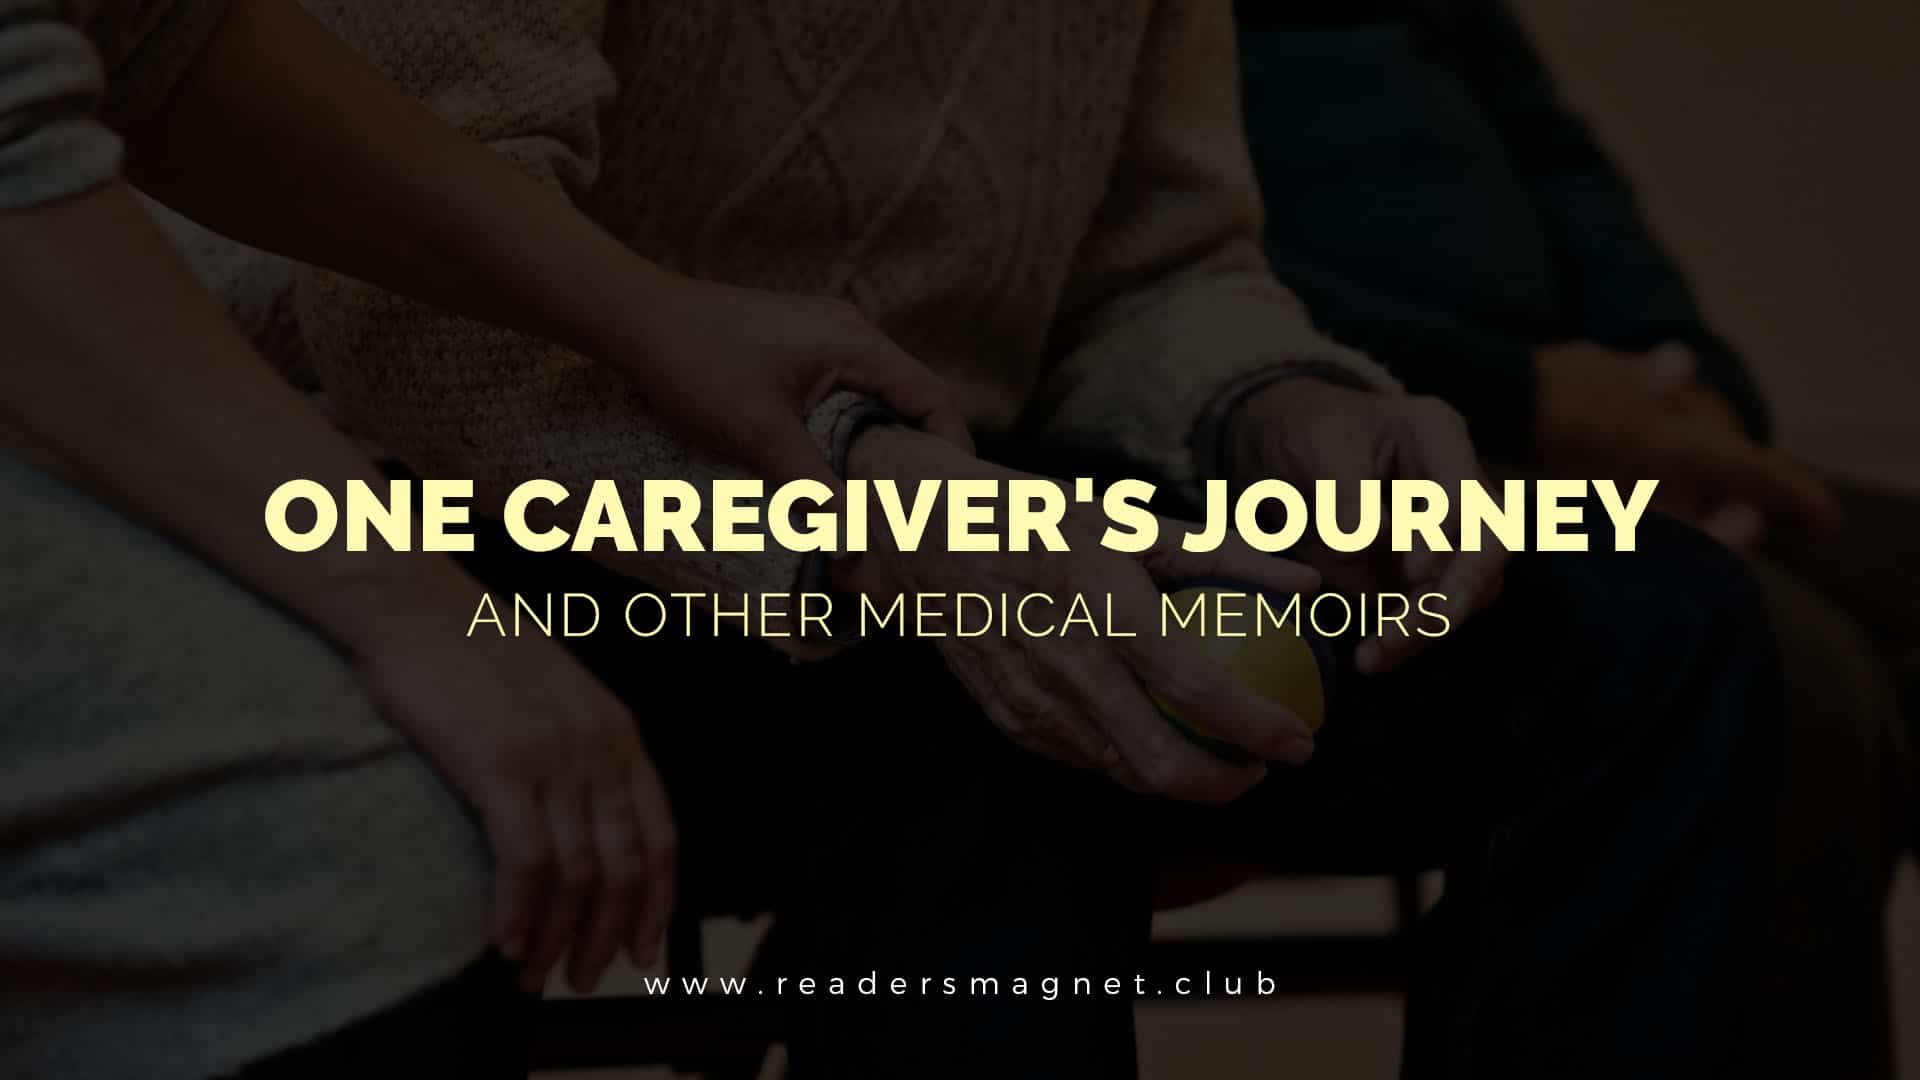 One Caregiver's Journey and Other Medical Memoirs